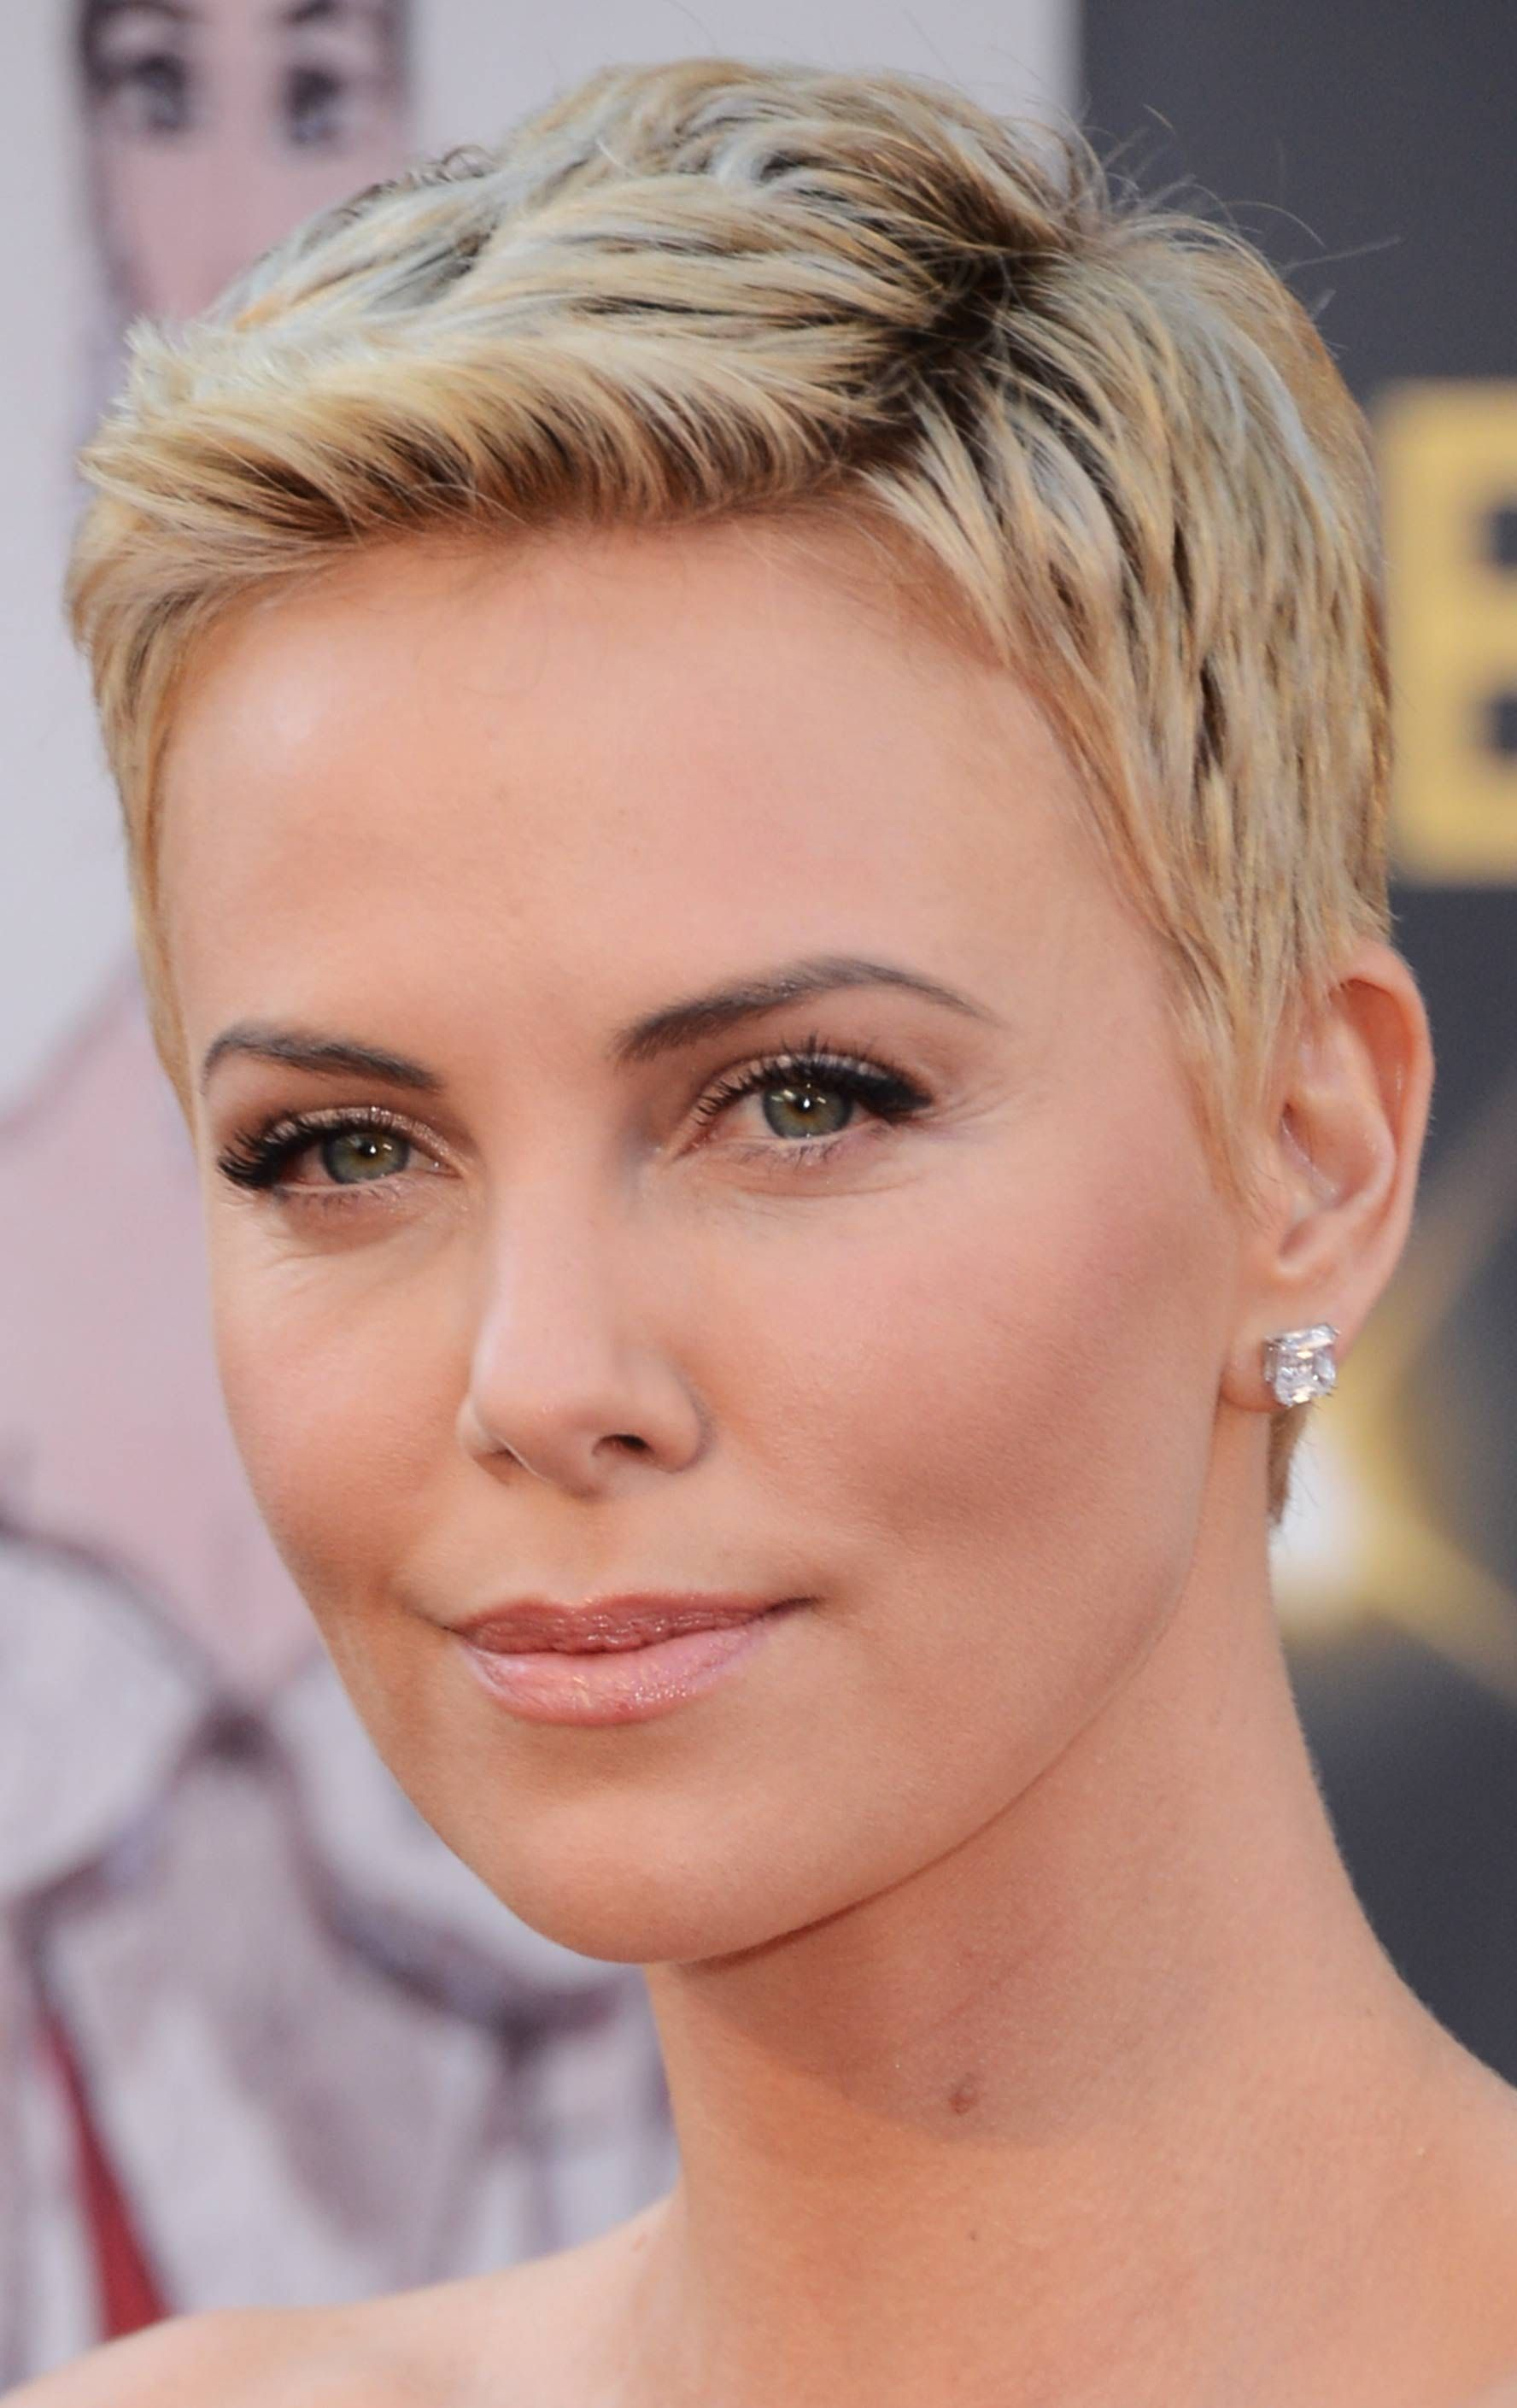 20 Flattering Hairstyles For Oval Faces Oval Face Hairstyles Very Short Hair Short Hair Styles